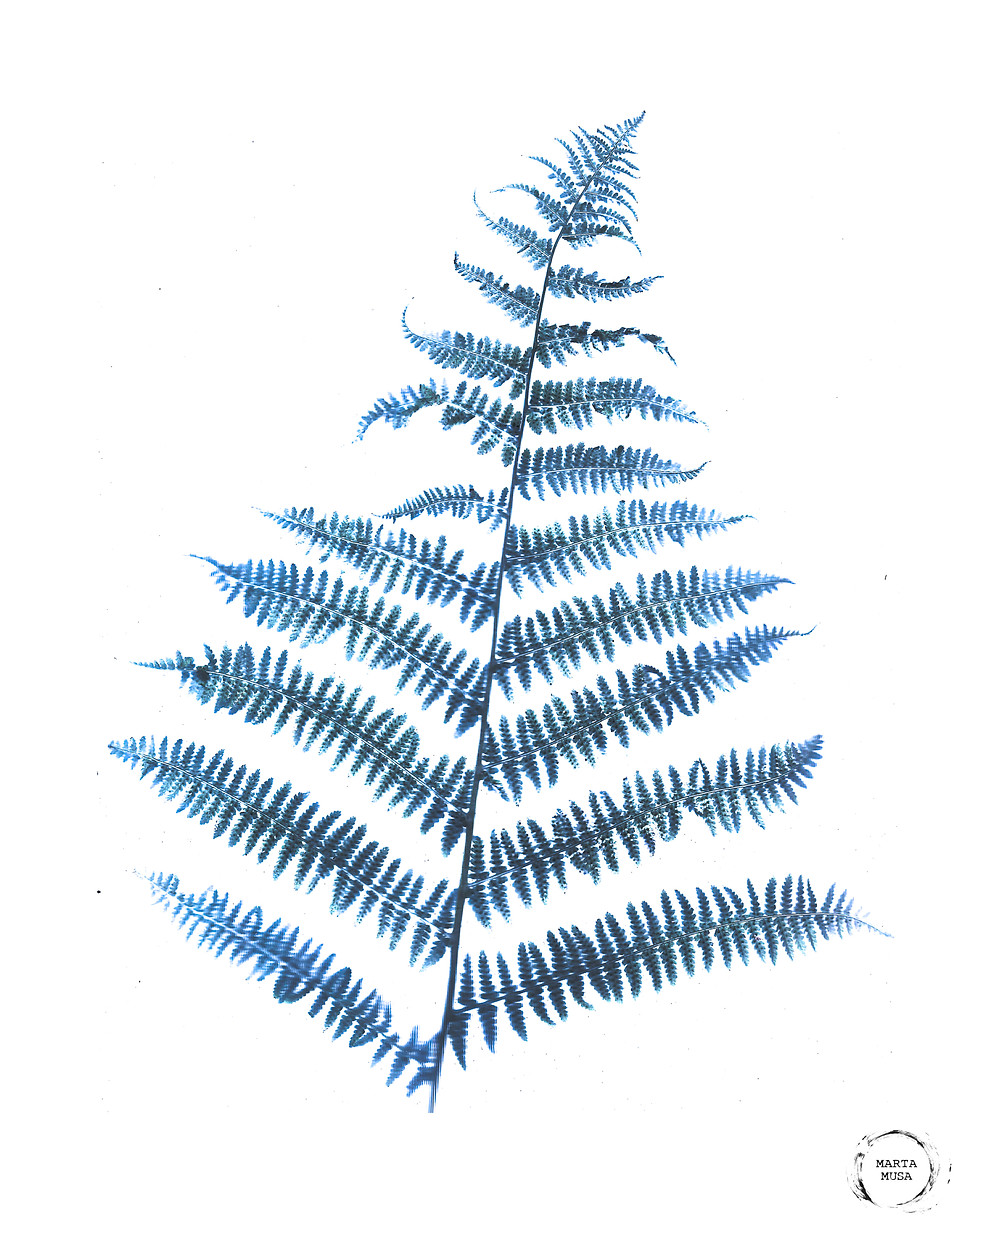 An image of a blue green fern branch on a white background